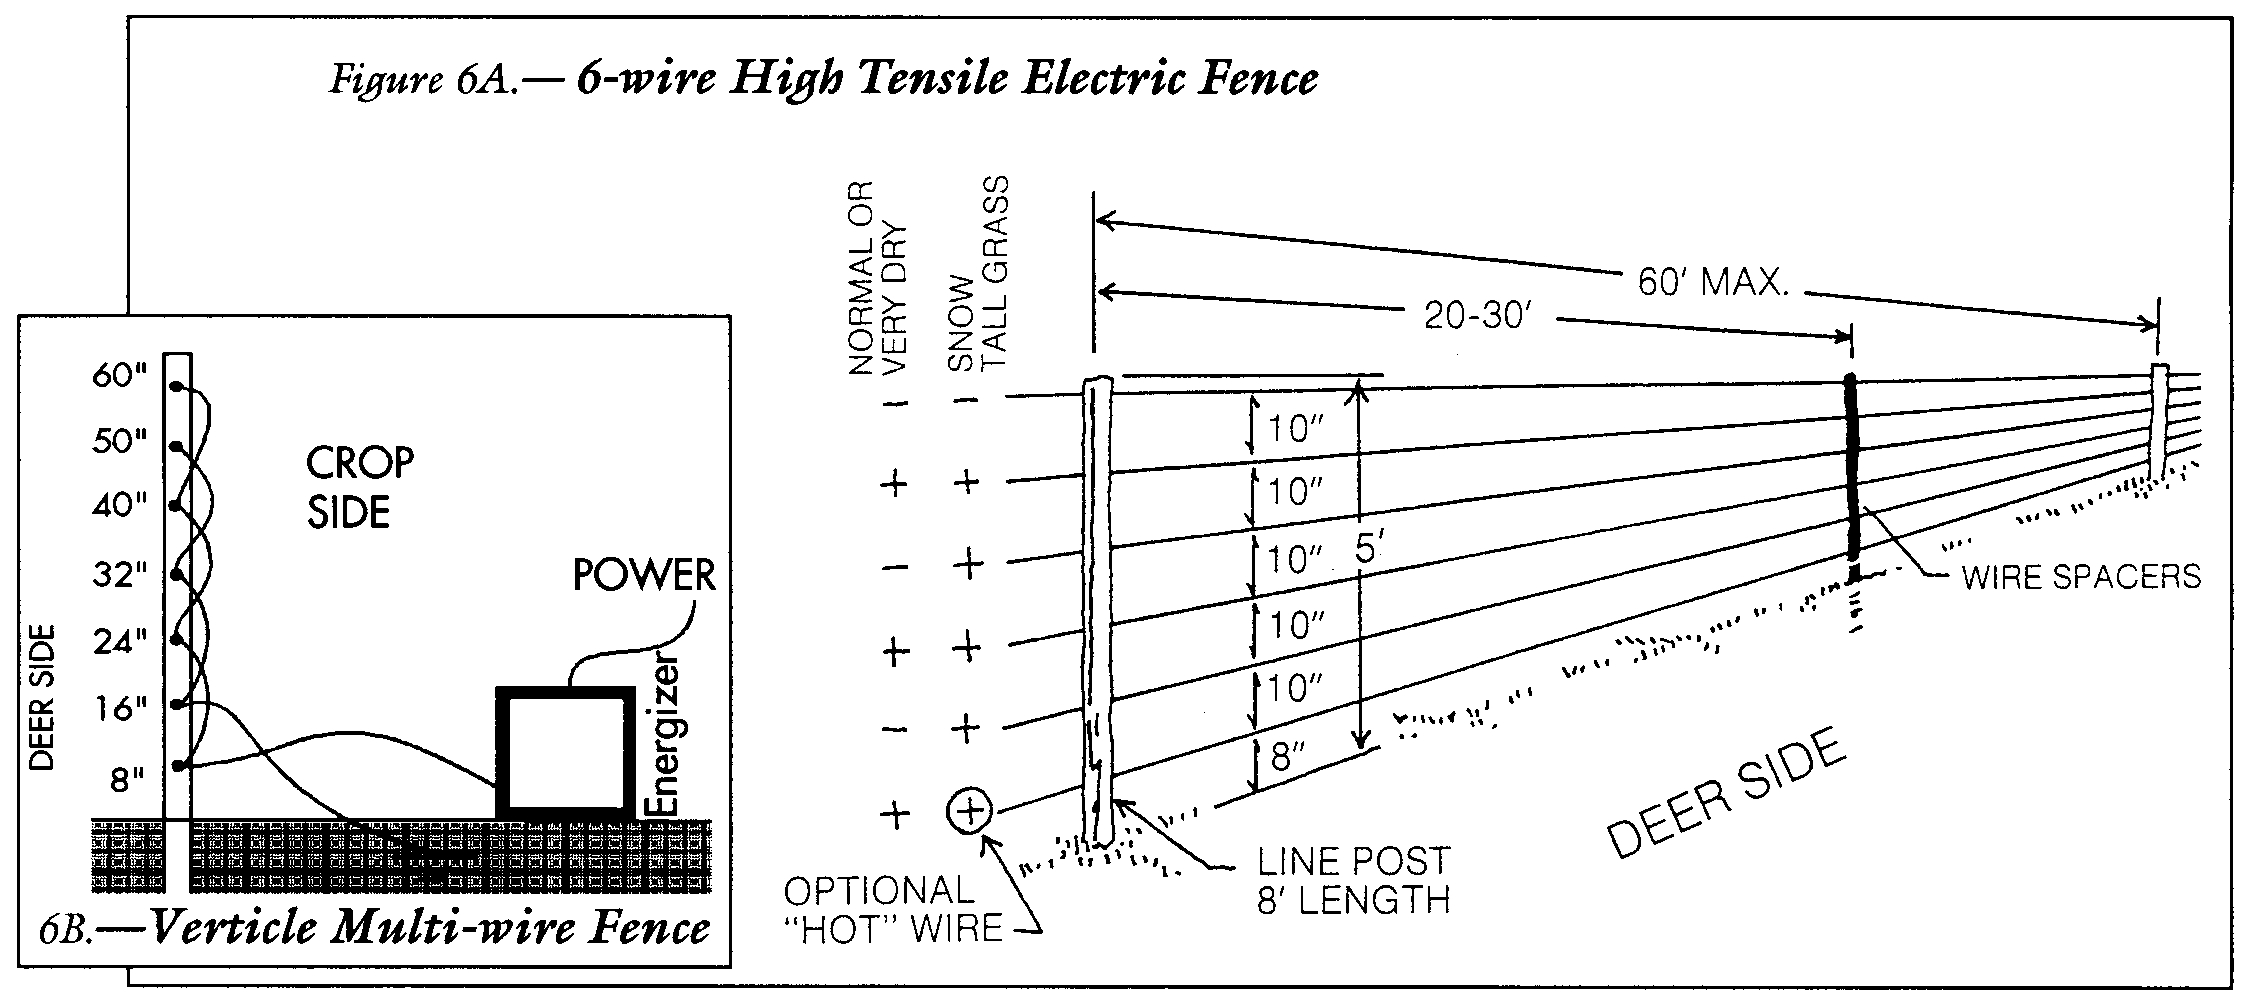 Nemtek Electric Fence Troubleshooting • Fences Design